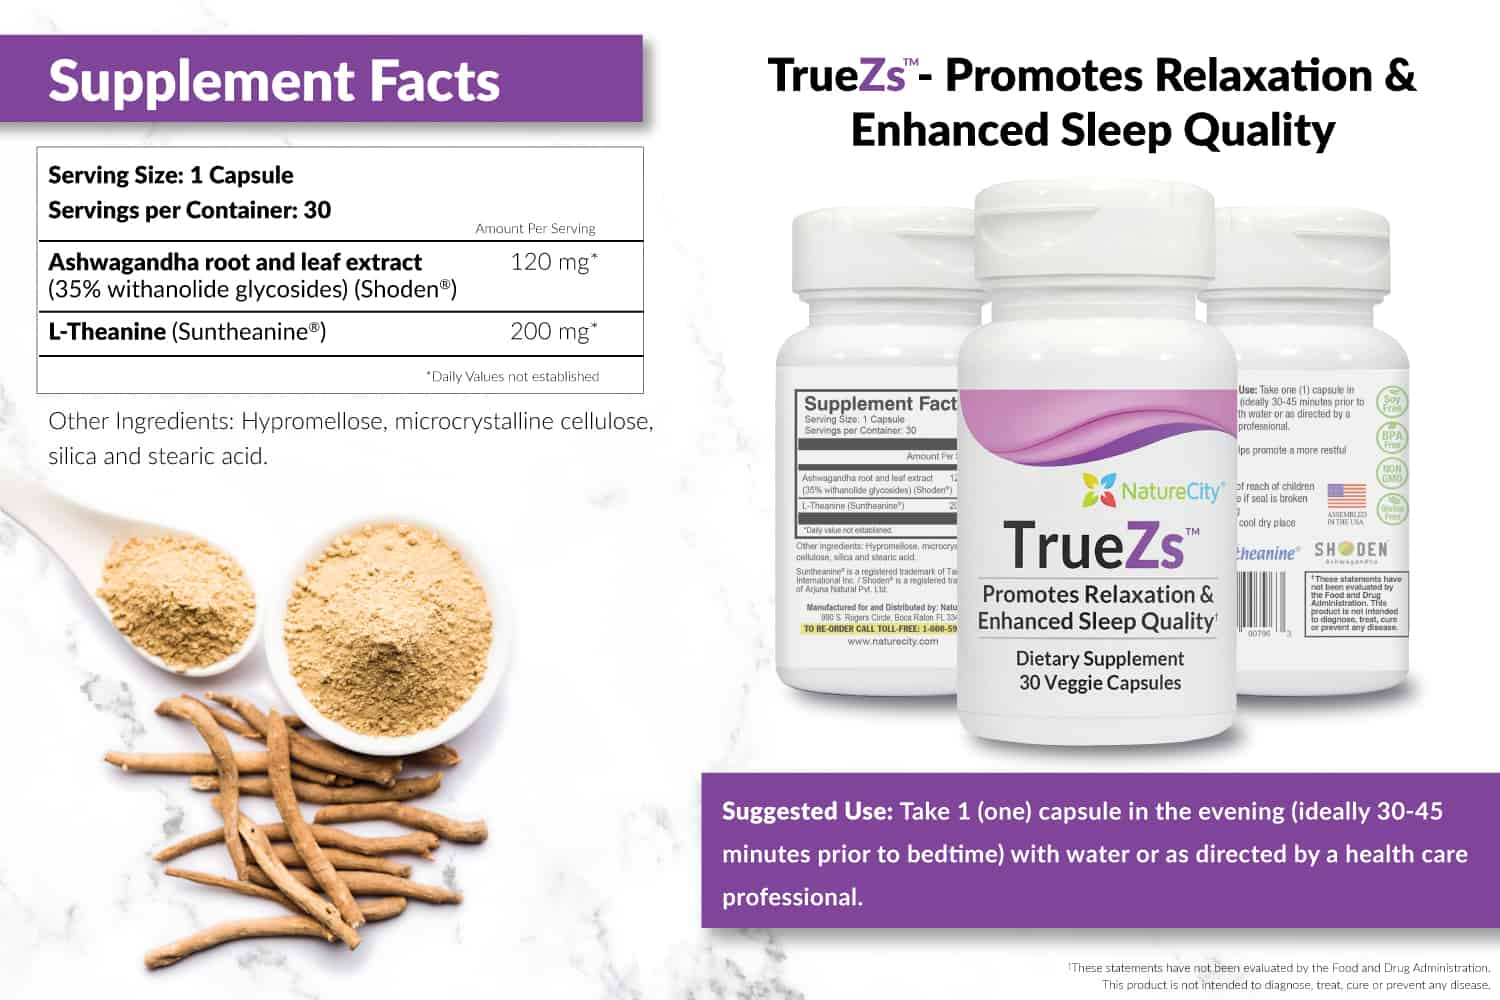 TrueZs Supplement Facts and Suggested Use